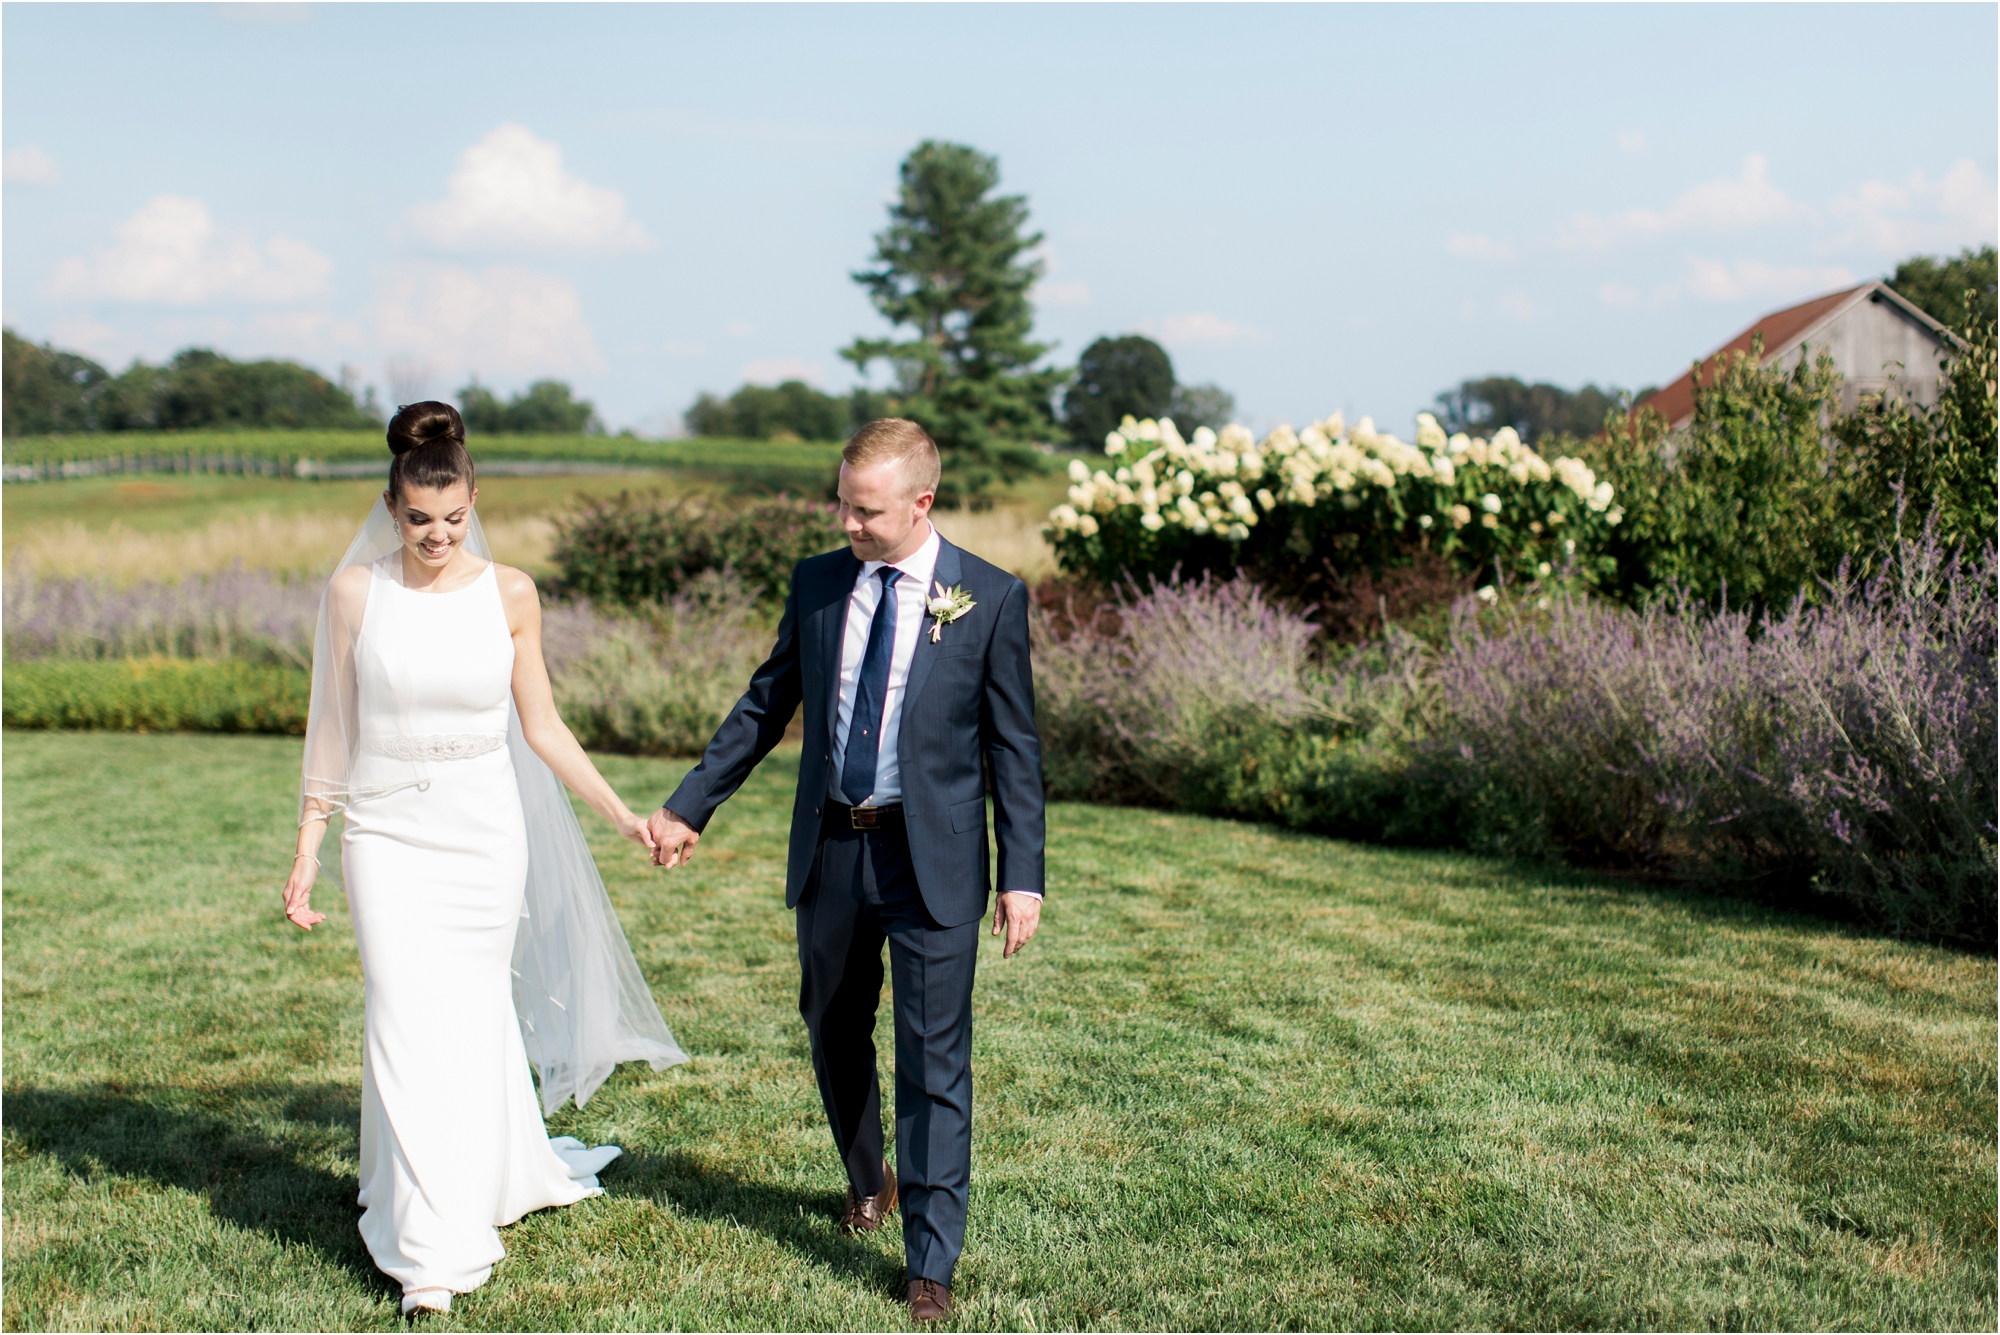 michelle-george-early-mountain-vineyard-charlottesville-virginia-wedding-photos_0013.jpg